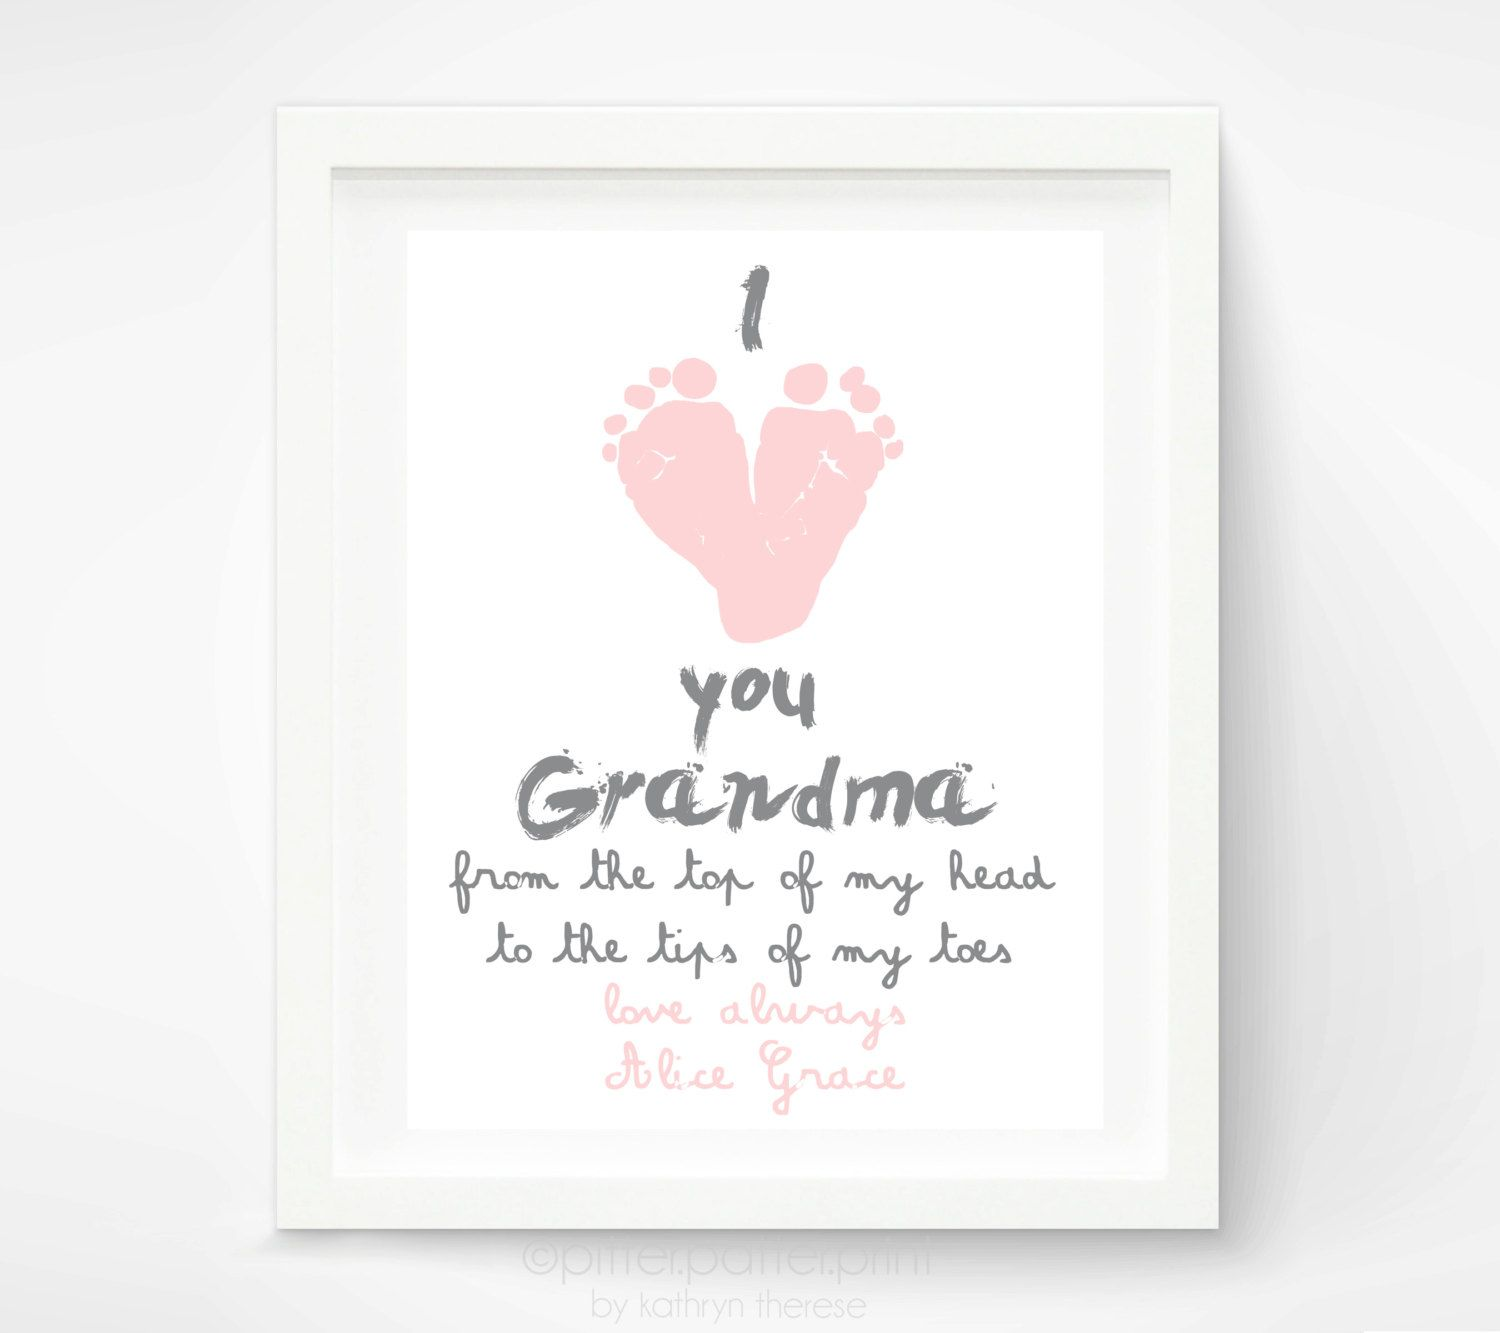 Personalized mothers day gift for grandma from baby i love you personalized mothers day gift for grandma i love you grandma baby footprint art gift for grandmother gift for new grandma 3000 via etsy negle Image collections